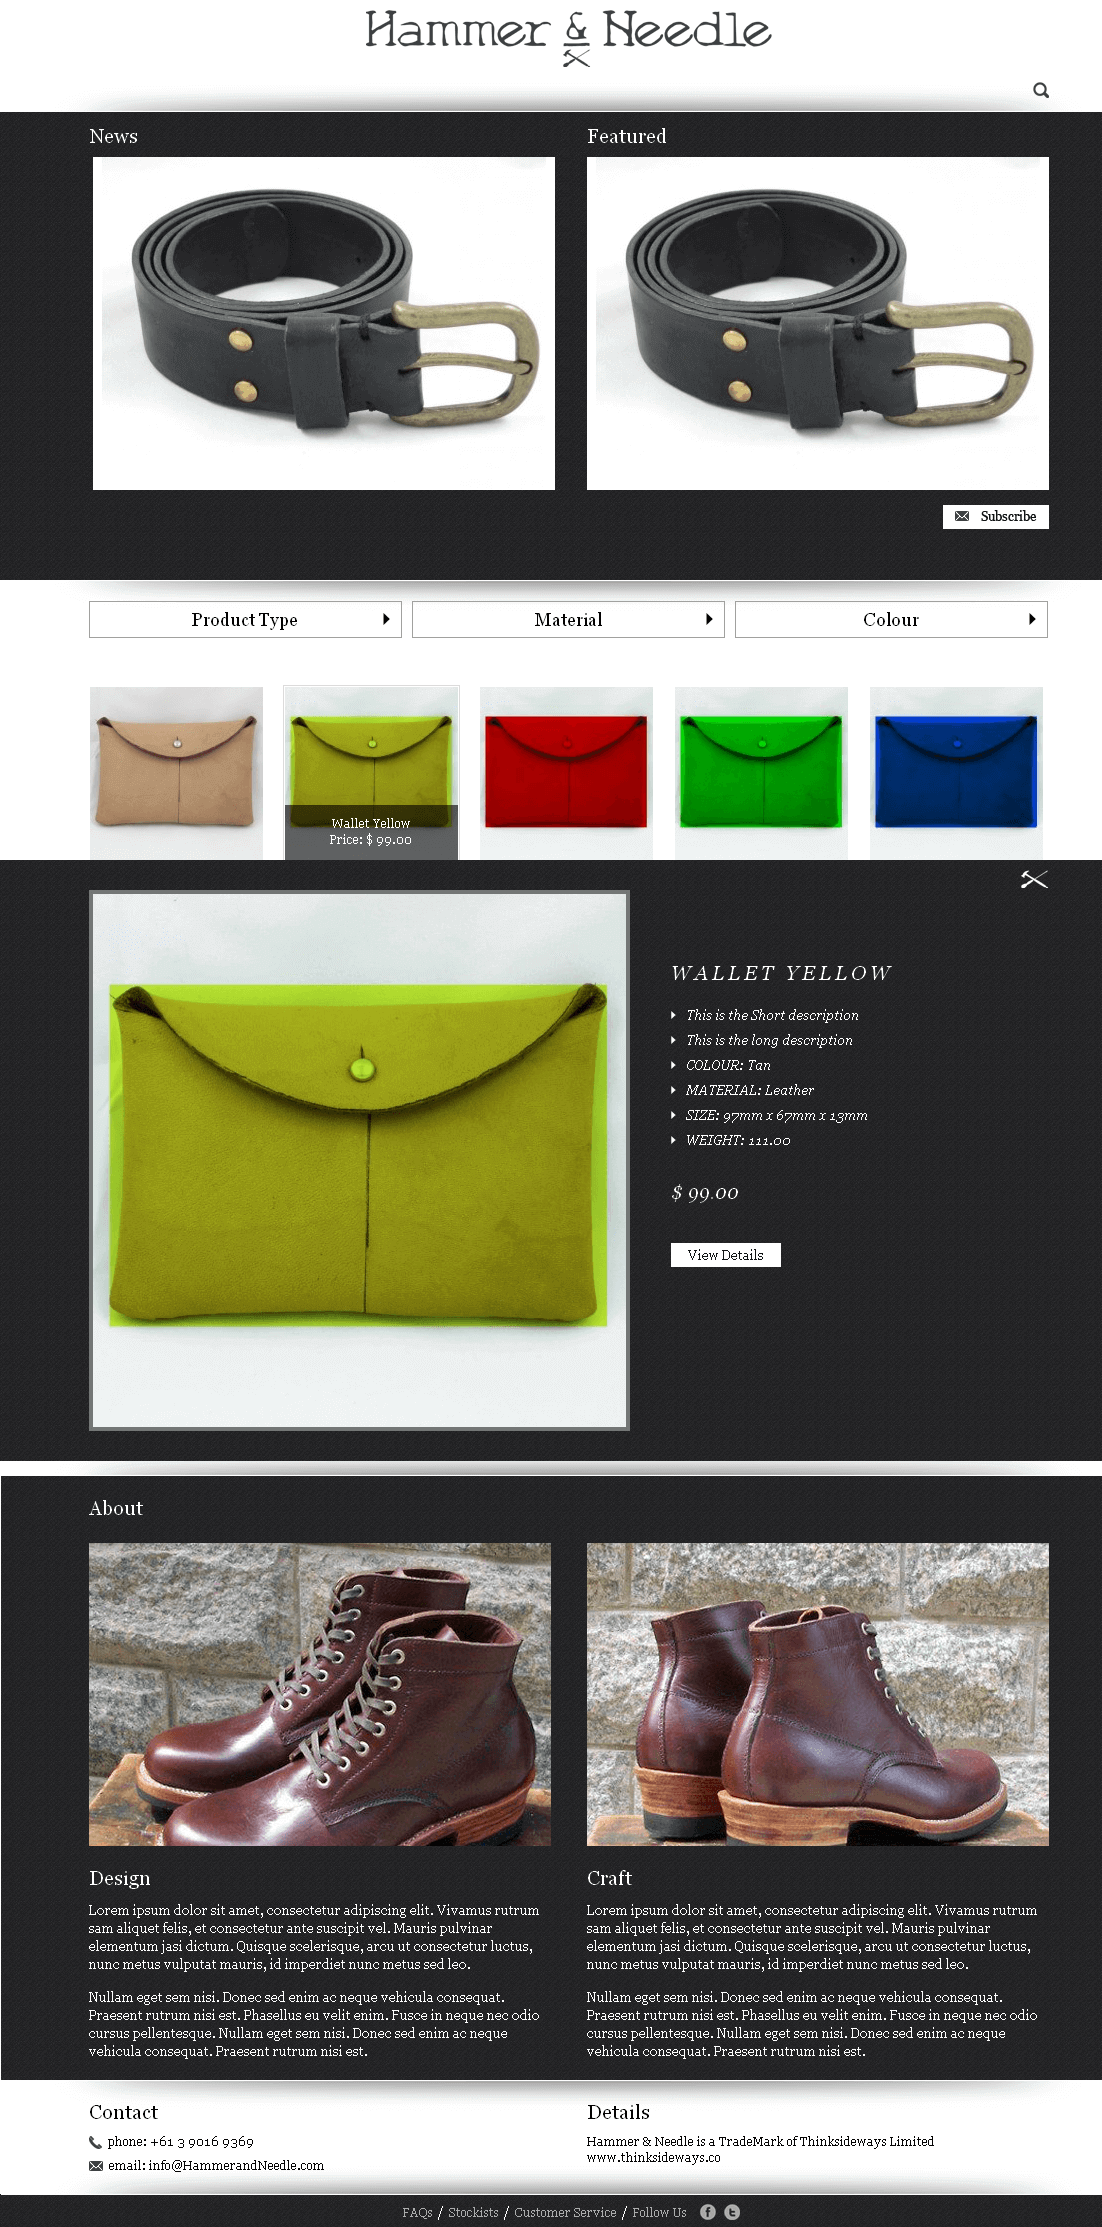 An Online Store Selling Leather Products